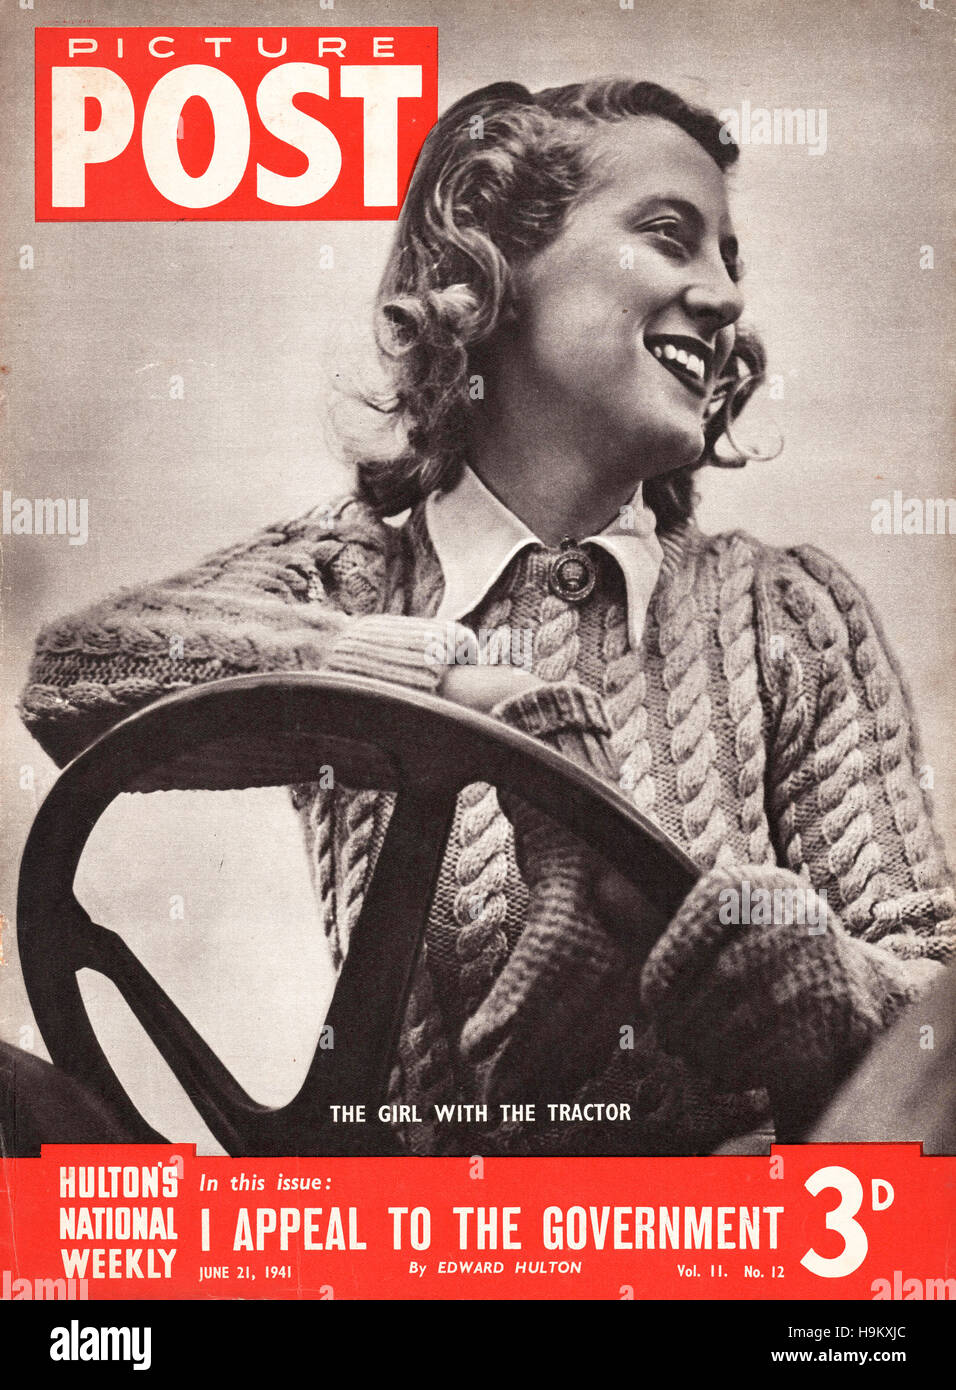 1941 Picture Post Girl with a tractor Stock Photo - Alamy